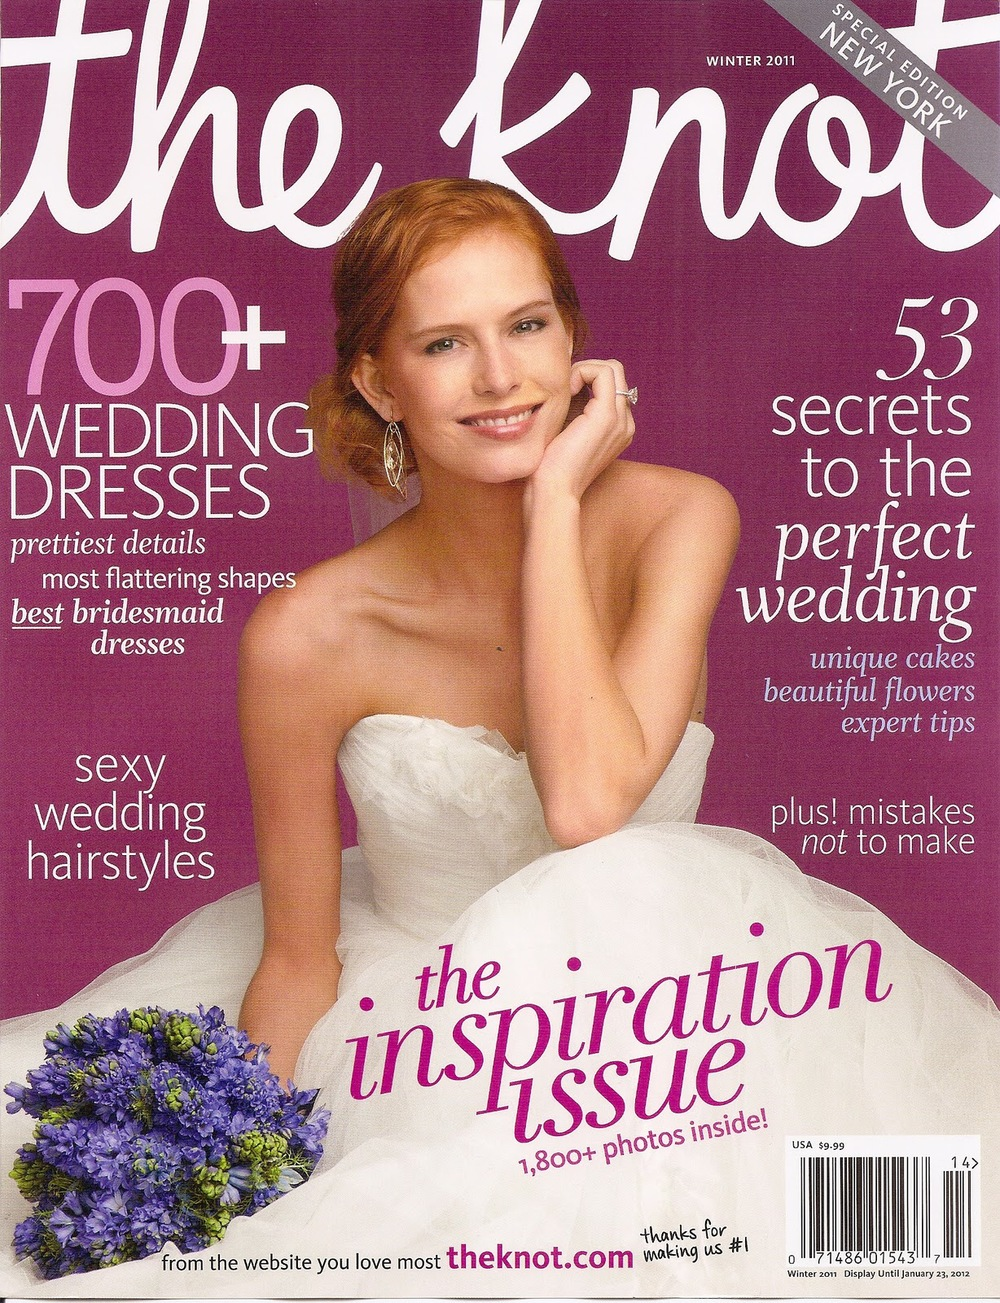 TheKnot Winter 2011 Cover.jpg